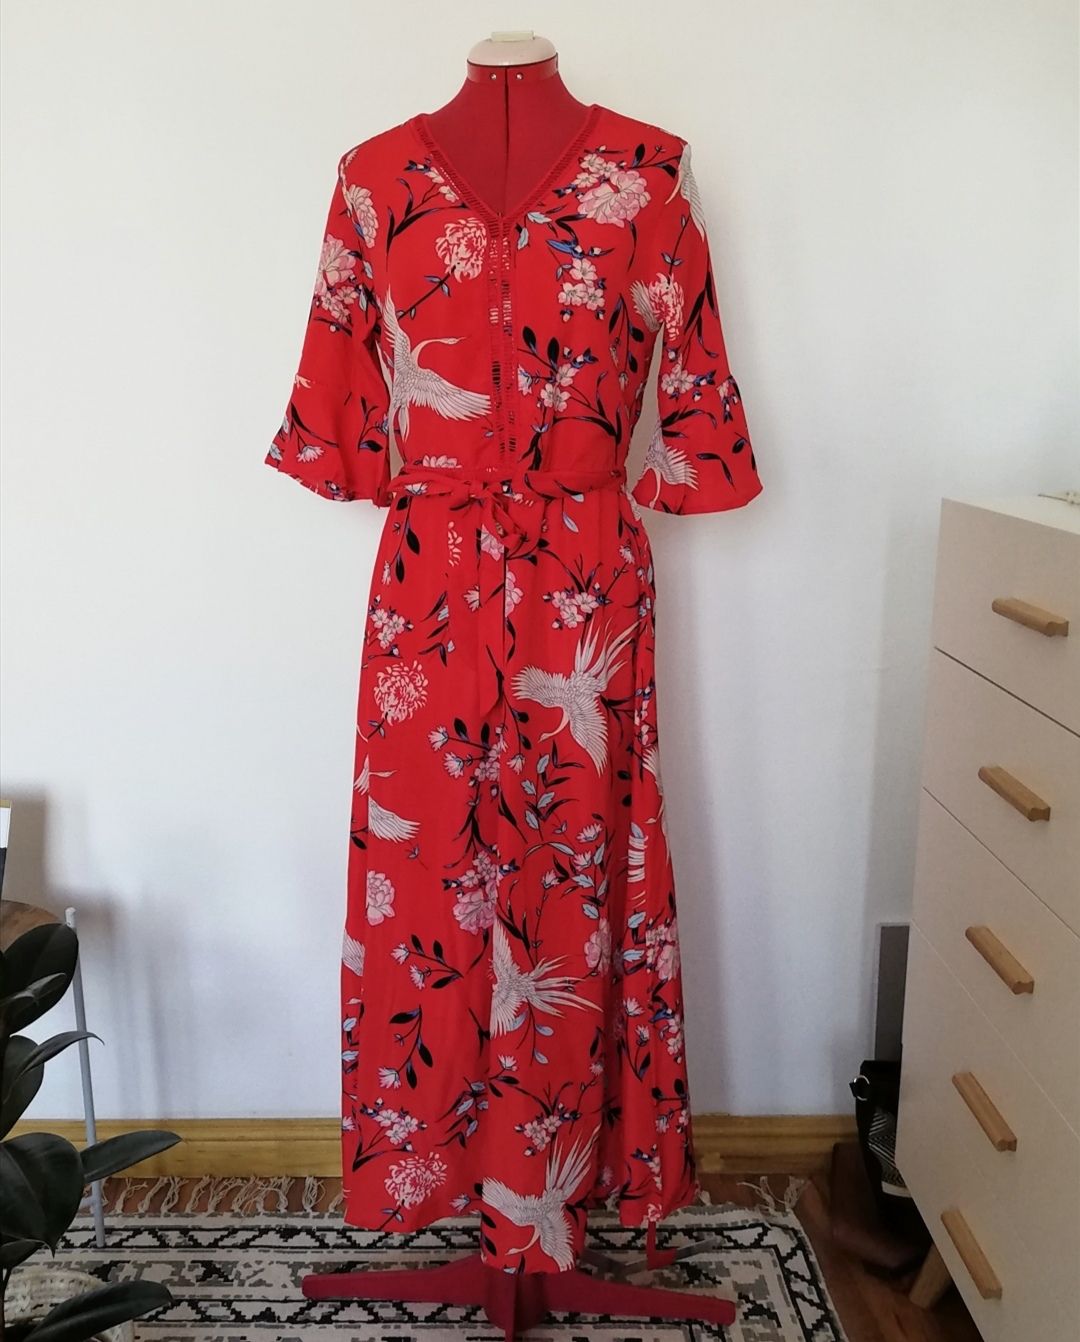 Red printed full-length dress.